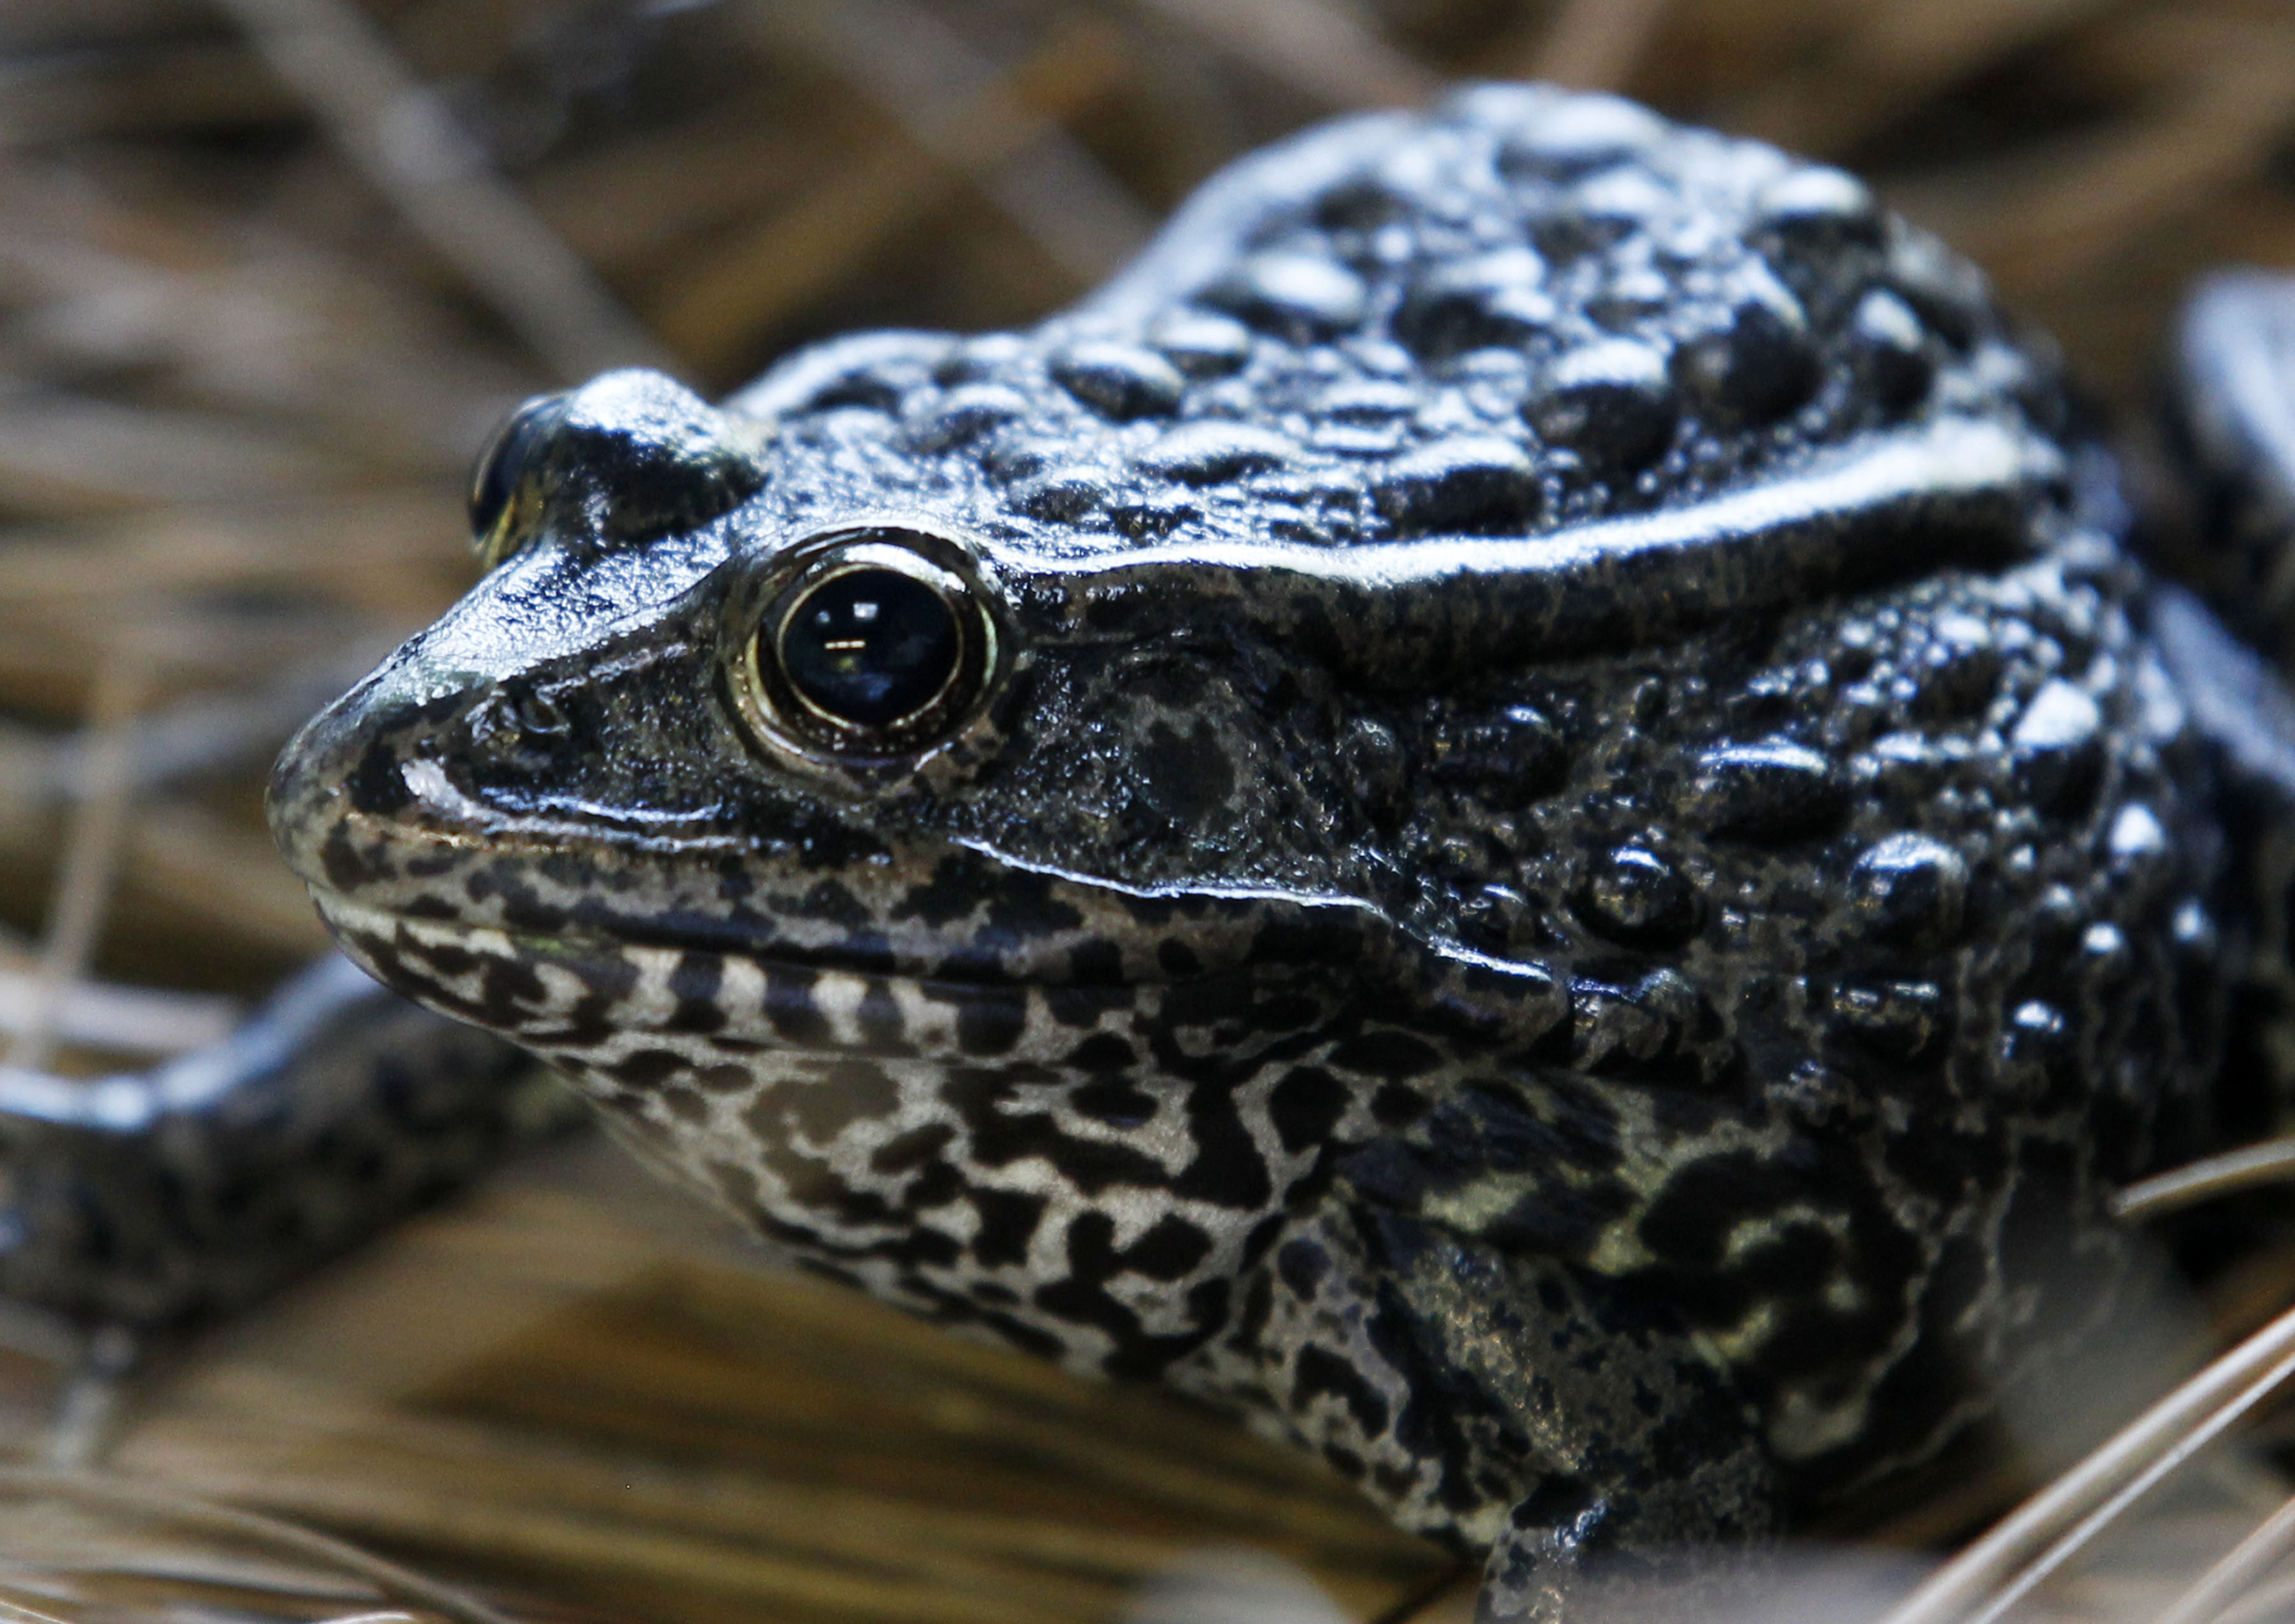 a gopher frog at the Audubon Zoo in New Orleans.